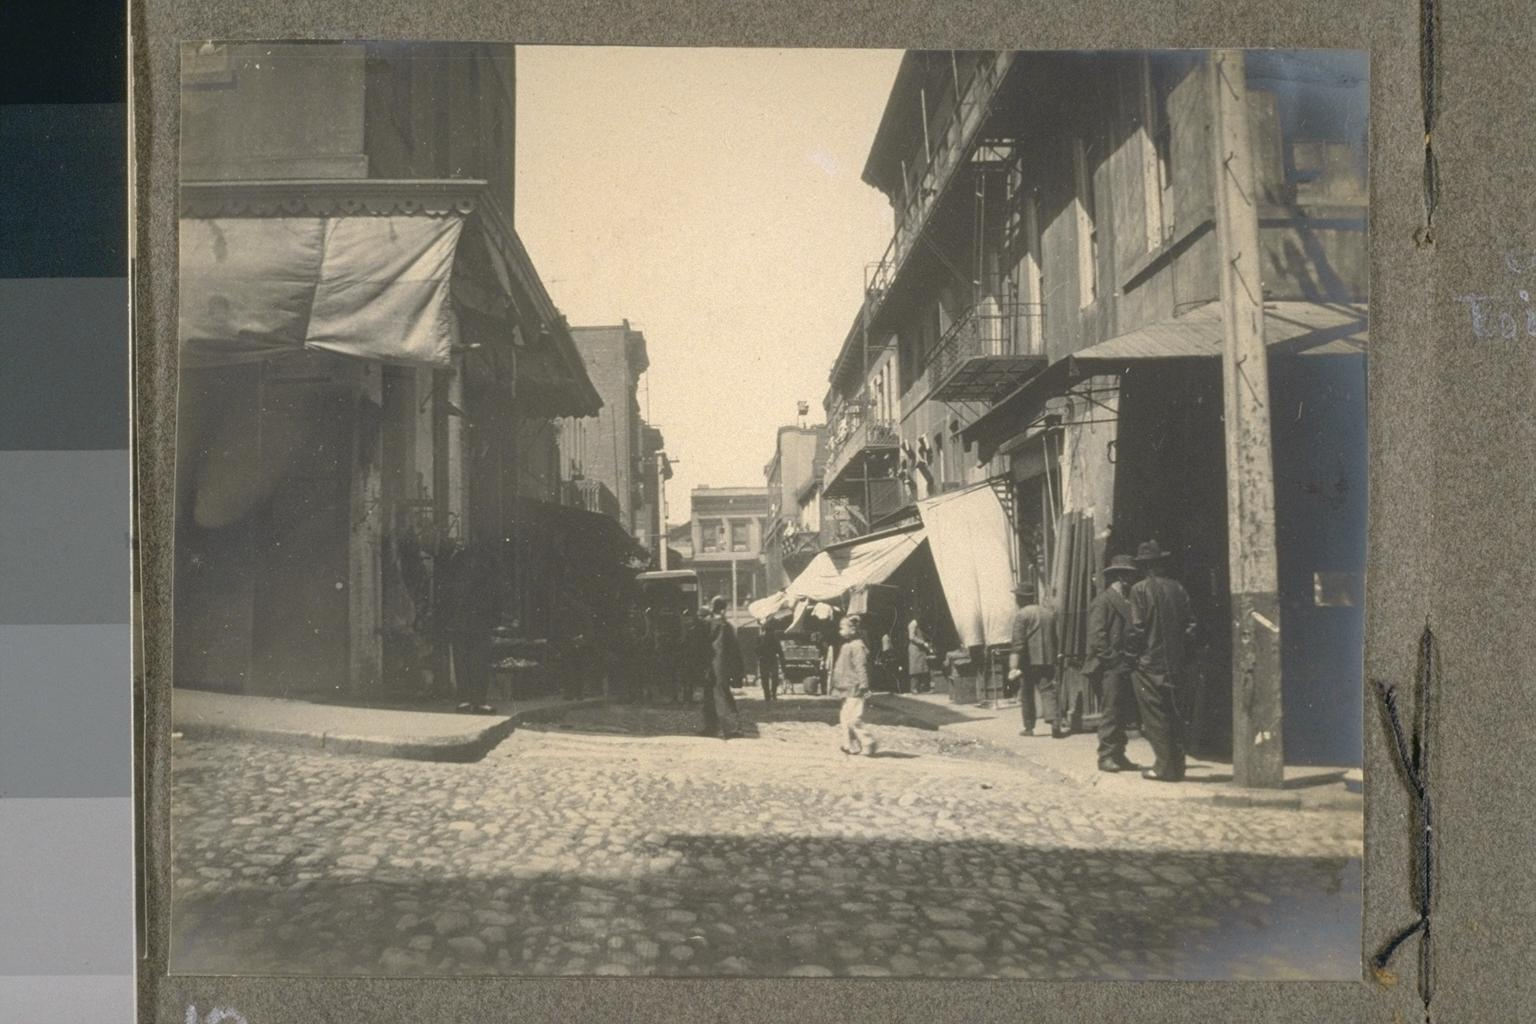 A Street Scene in Chinatown, San Francisco. Circa 1906. From collection at Bancroft Library, UC Berkeley.